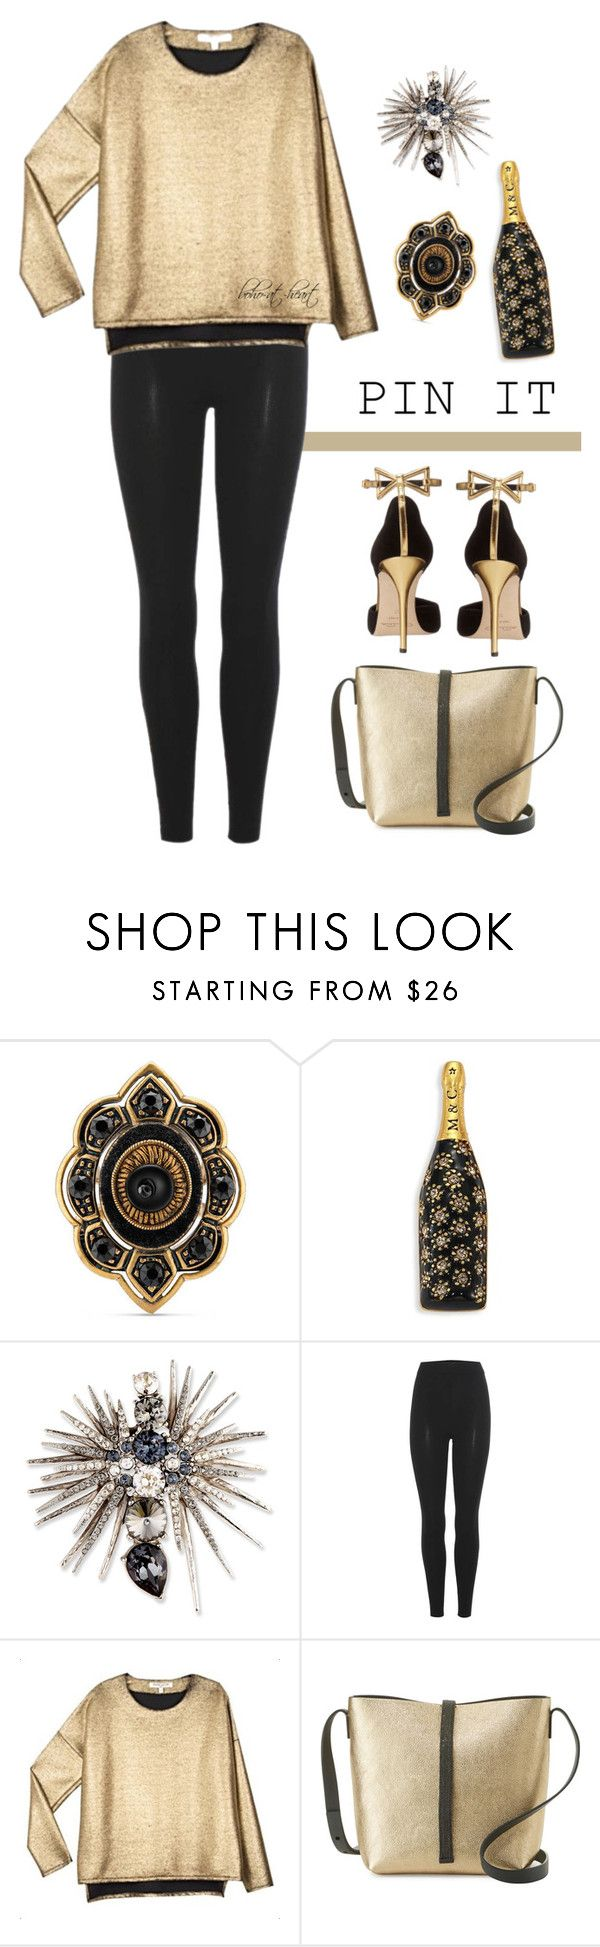 """New Year's Pins"" by boho-at-heart ❤ liked on Polyvore featuring Gucci, Marc Jacobs, Oscar de la Renta, adidas Originals, VALENTINE GAUTHIER and Brunello Cucinelli"